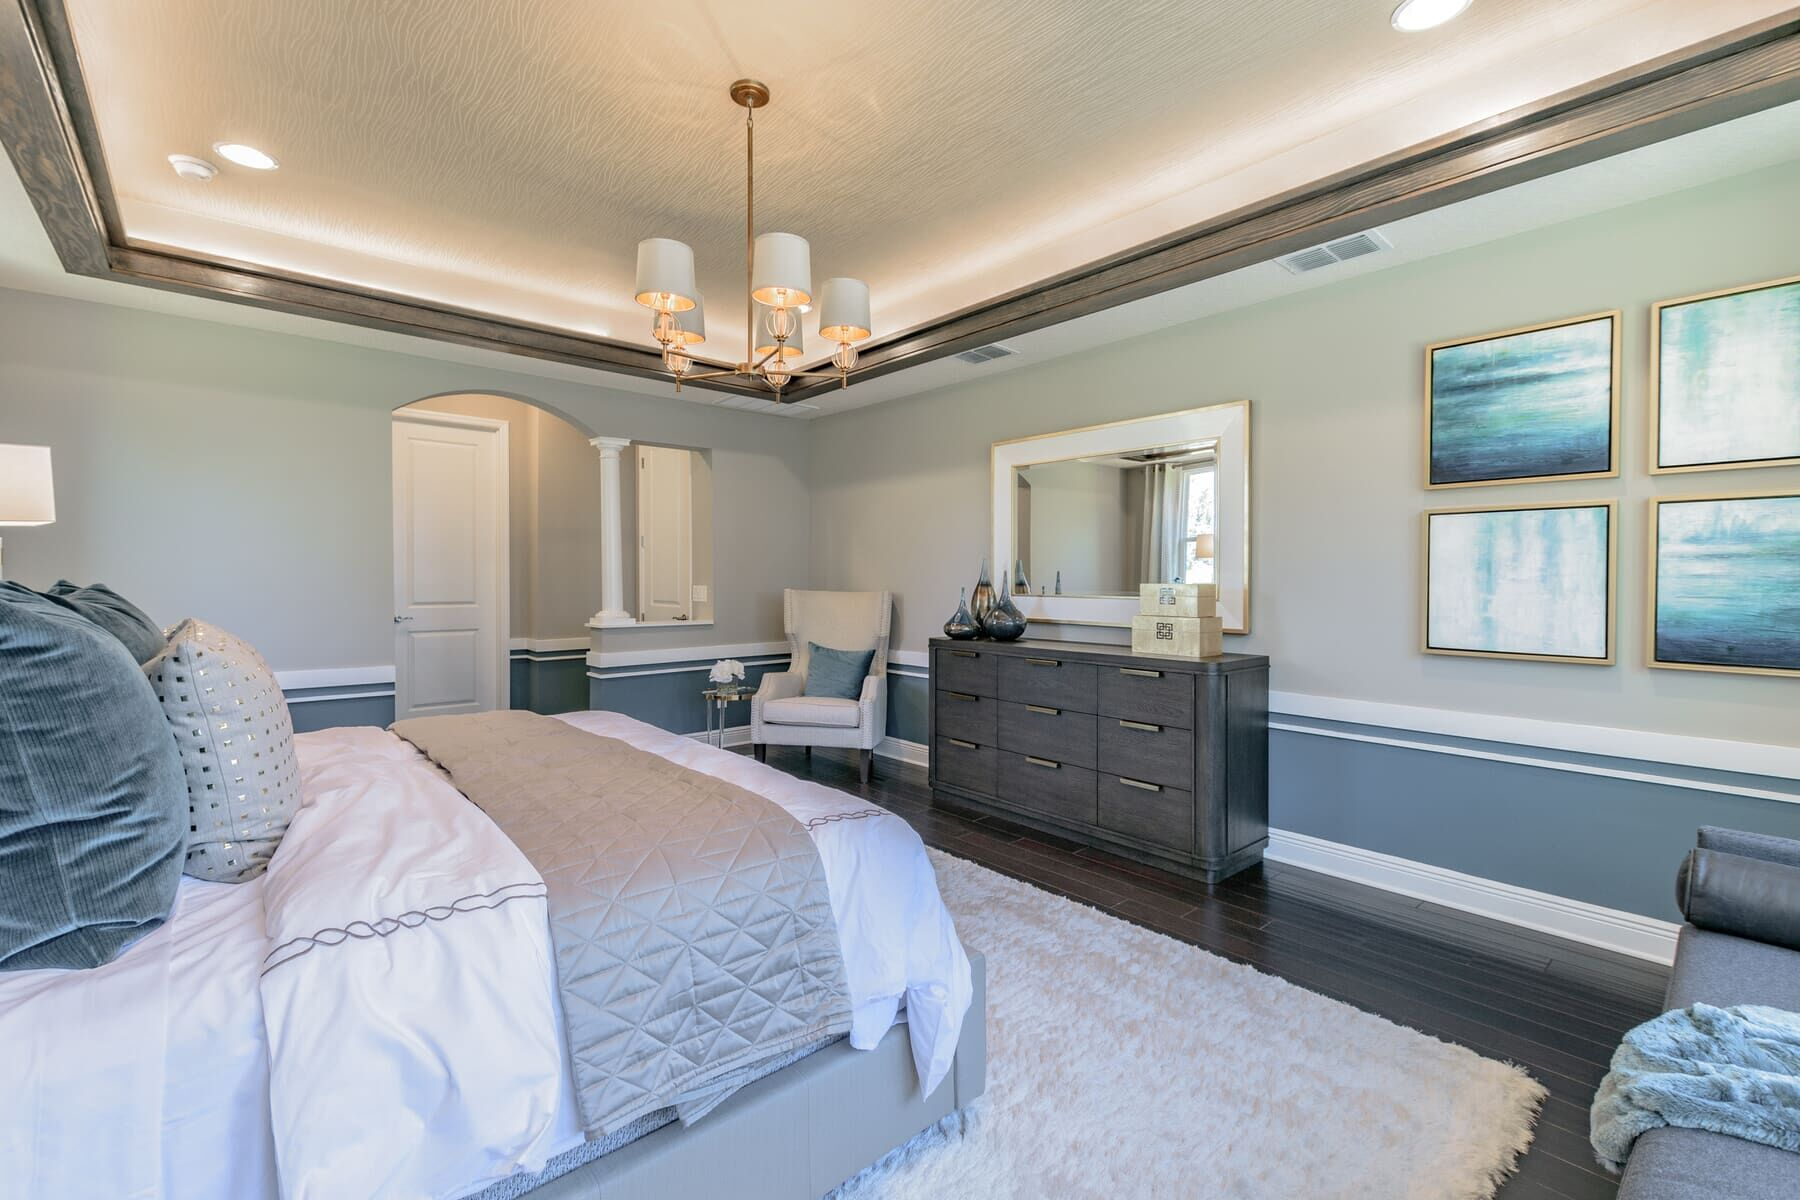 Bedroom featured in the Grandsail  III By M/I Homes in Tampa-St. Petersburg, FL